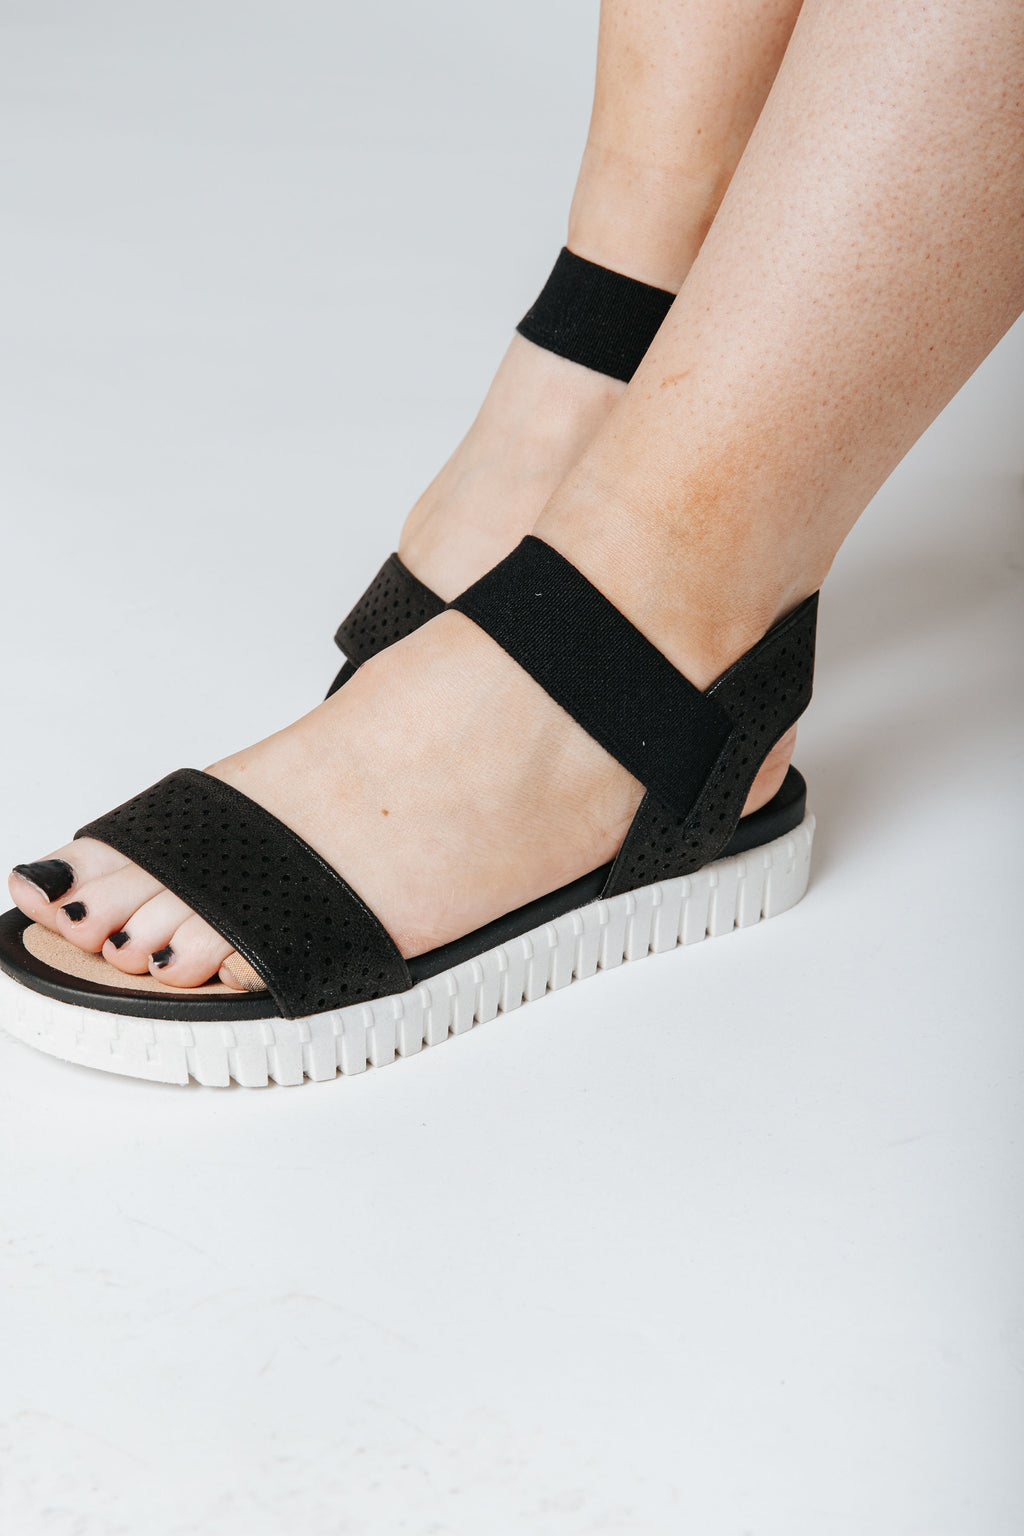 The Shanny Sandal in Black